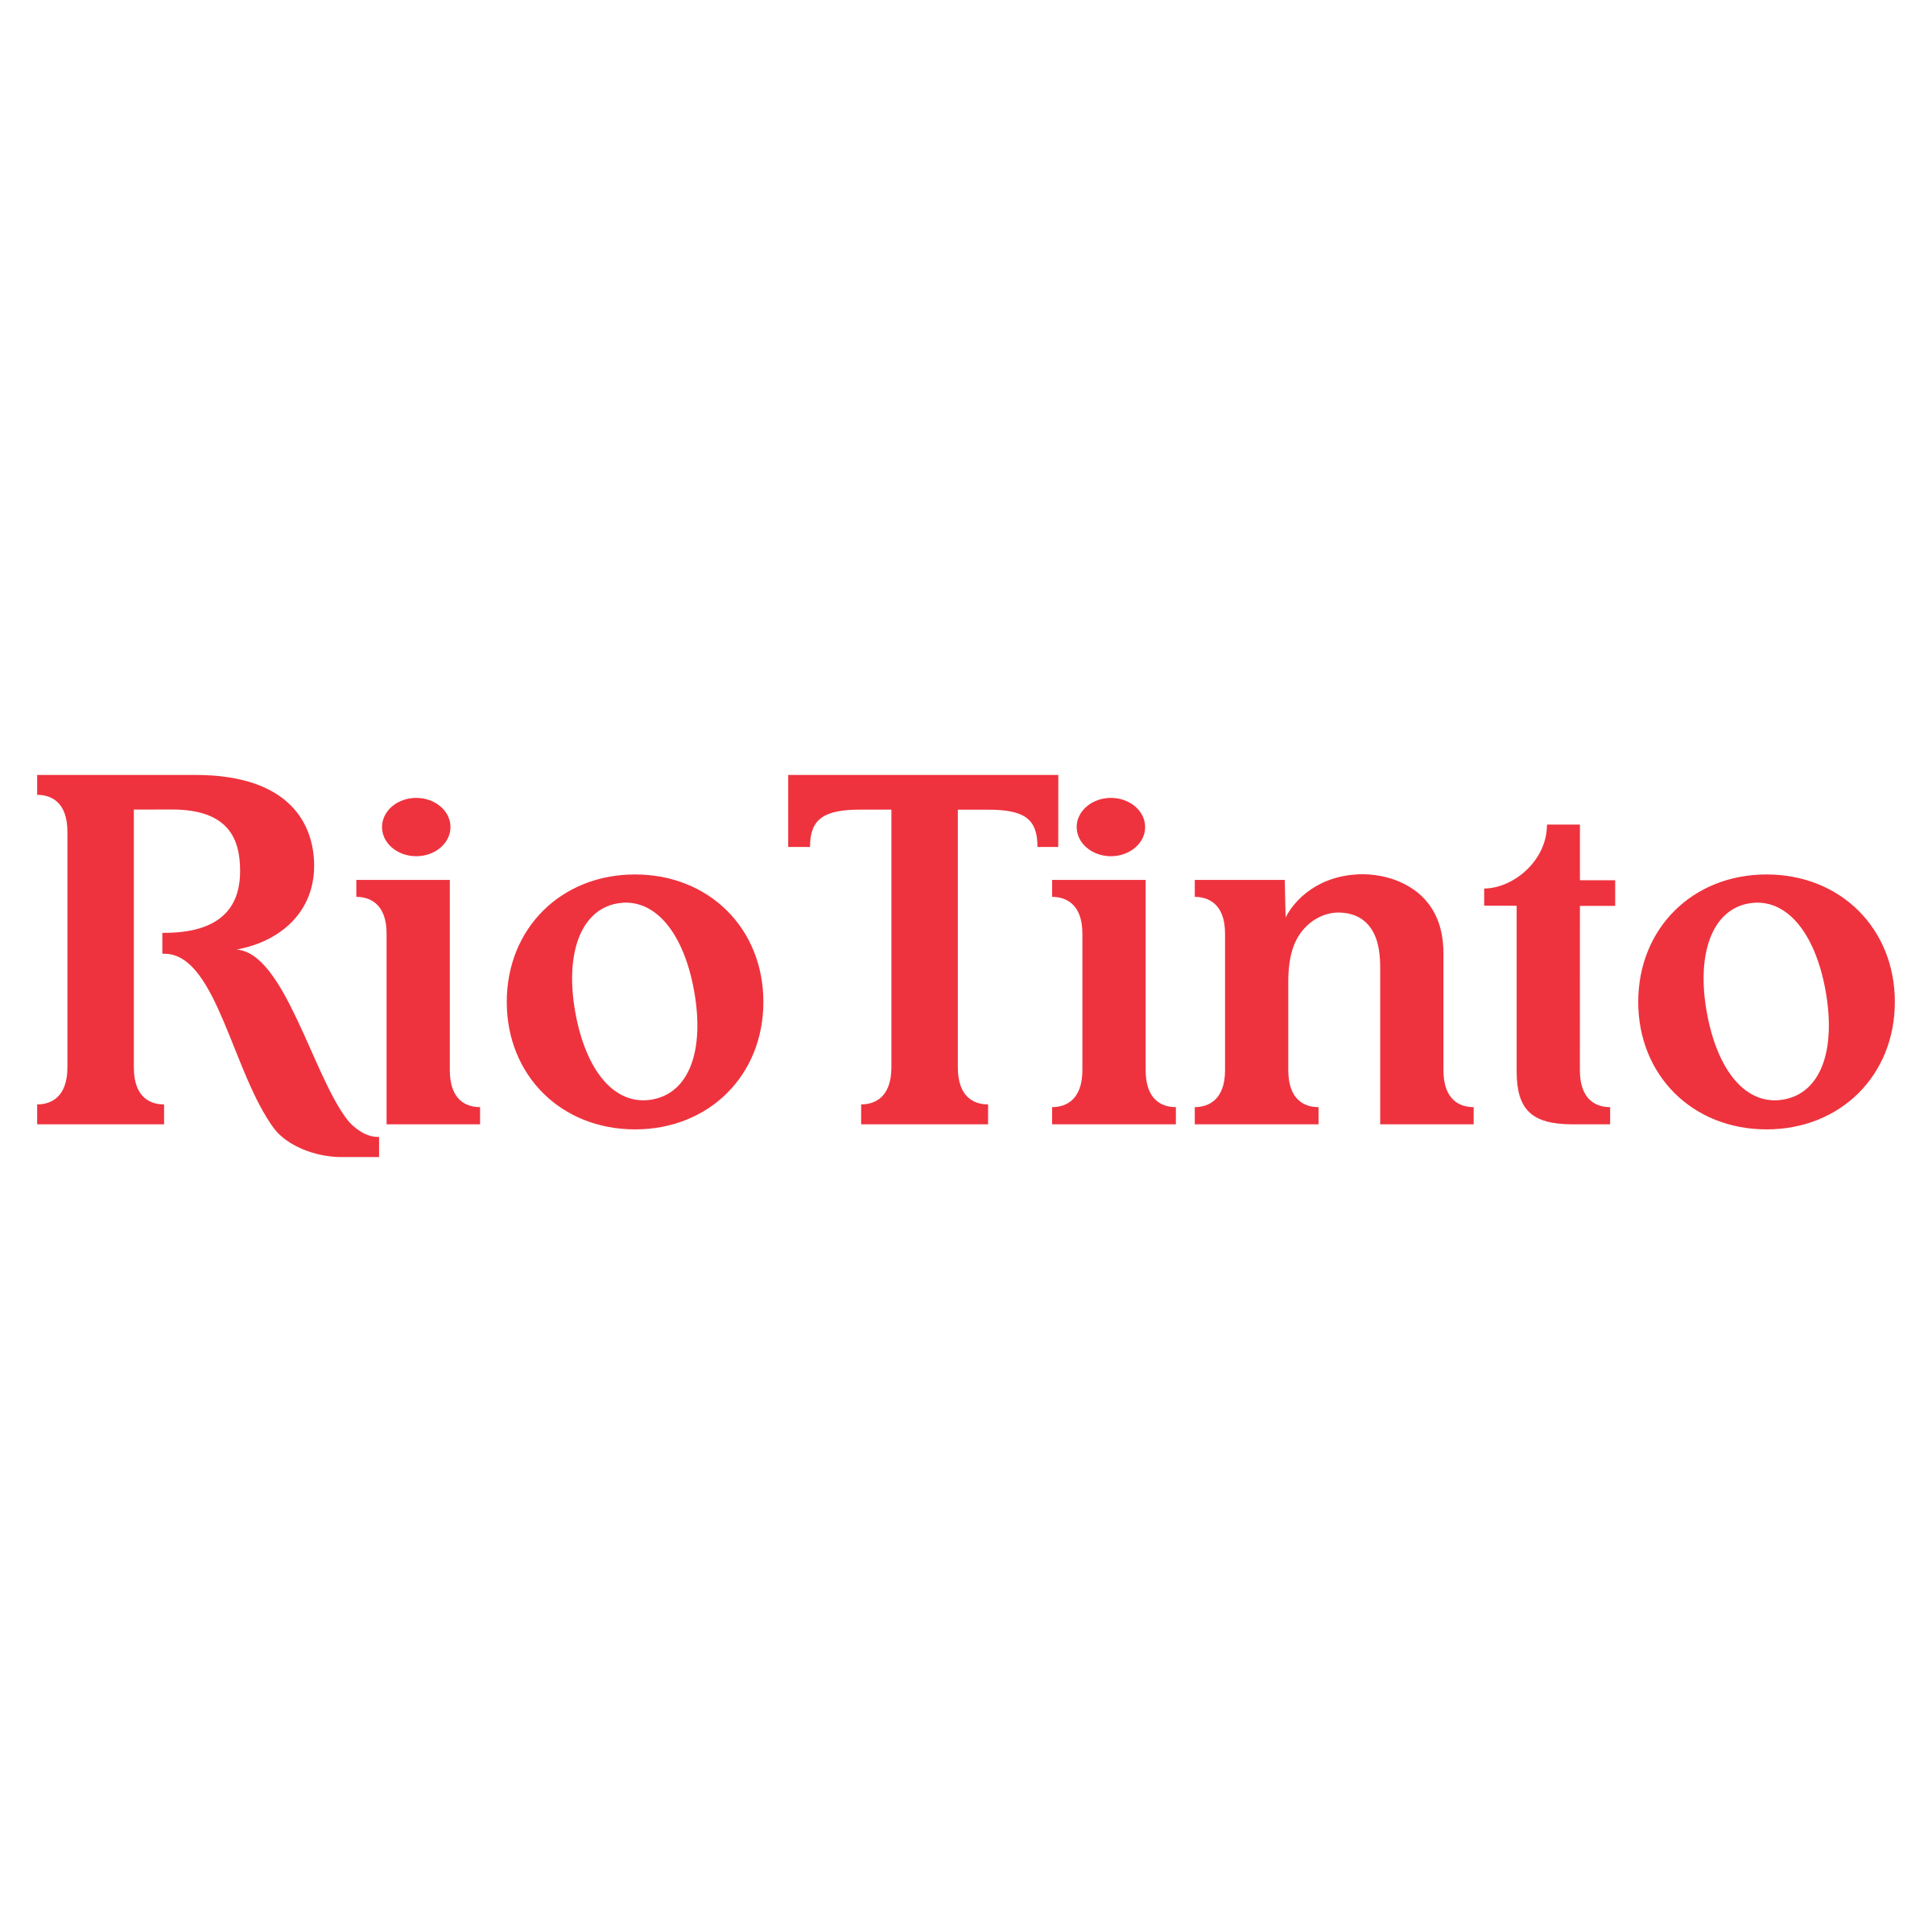 https://freightquip.com/production/wp-content/uploads/2020/07/Rio-Tinto-Logo.jpg